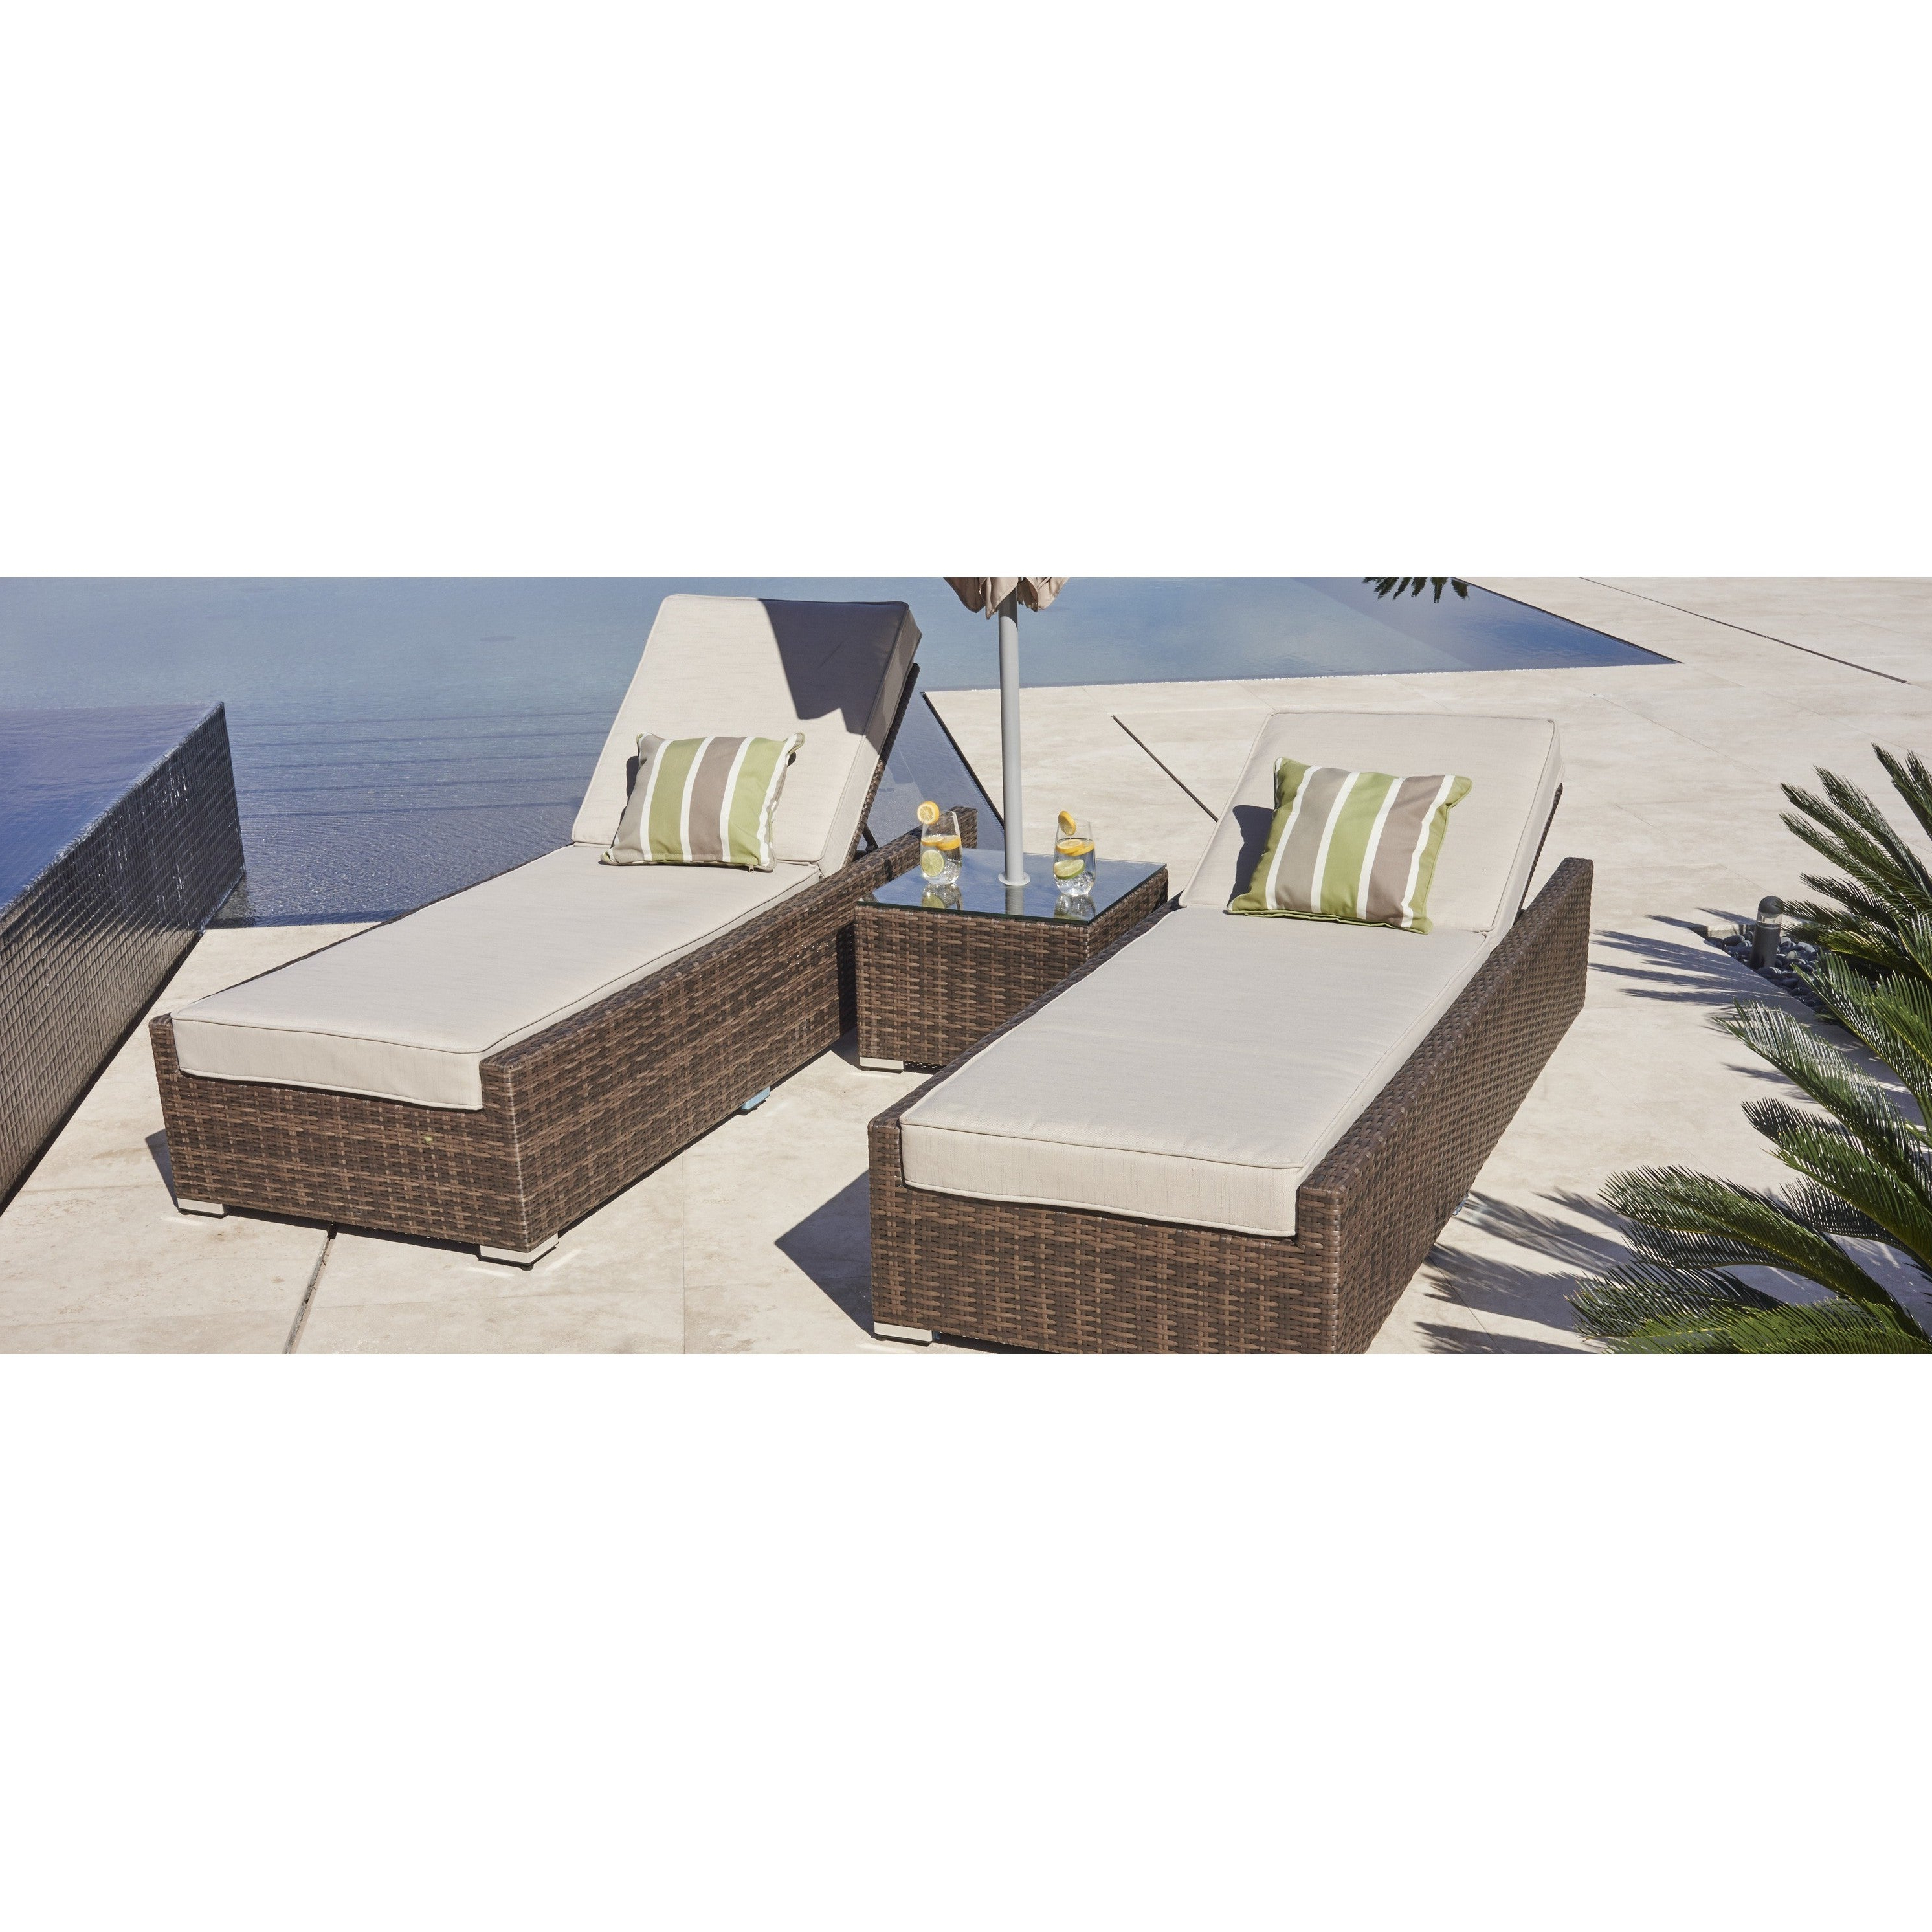 Outdoor 3 Piece Wicker Chaise Lounges And Table Sets Inside Famous Vida Brown Wicker Outdoor Patio Chaise Lounger Chairs And Side Table (Set  Of 3) (View 14 of 25)